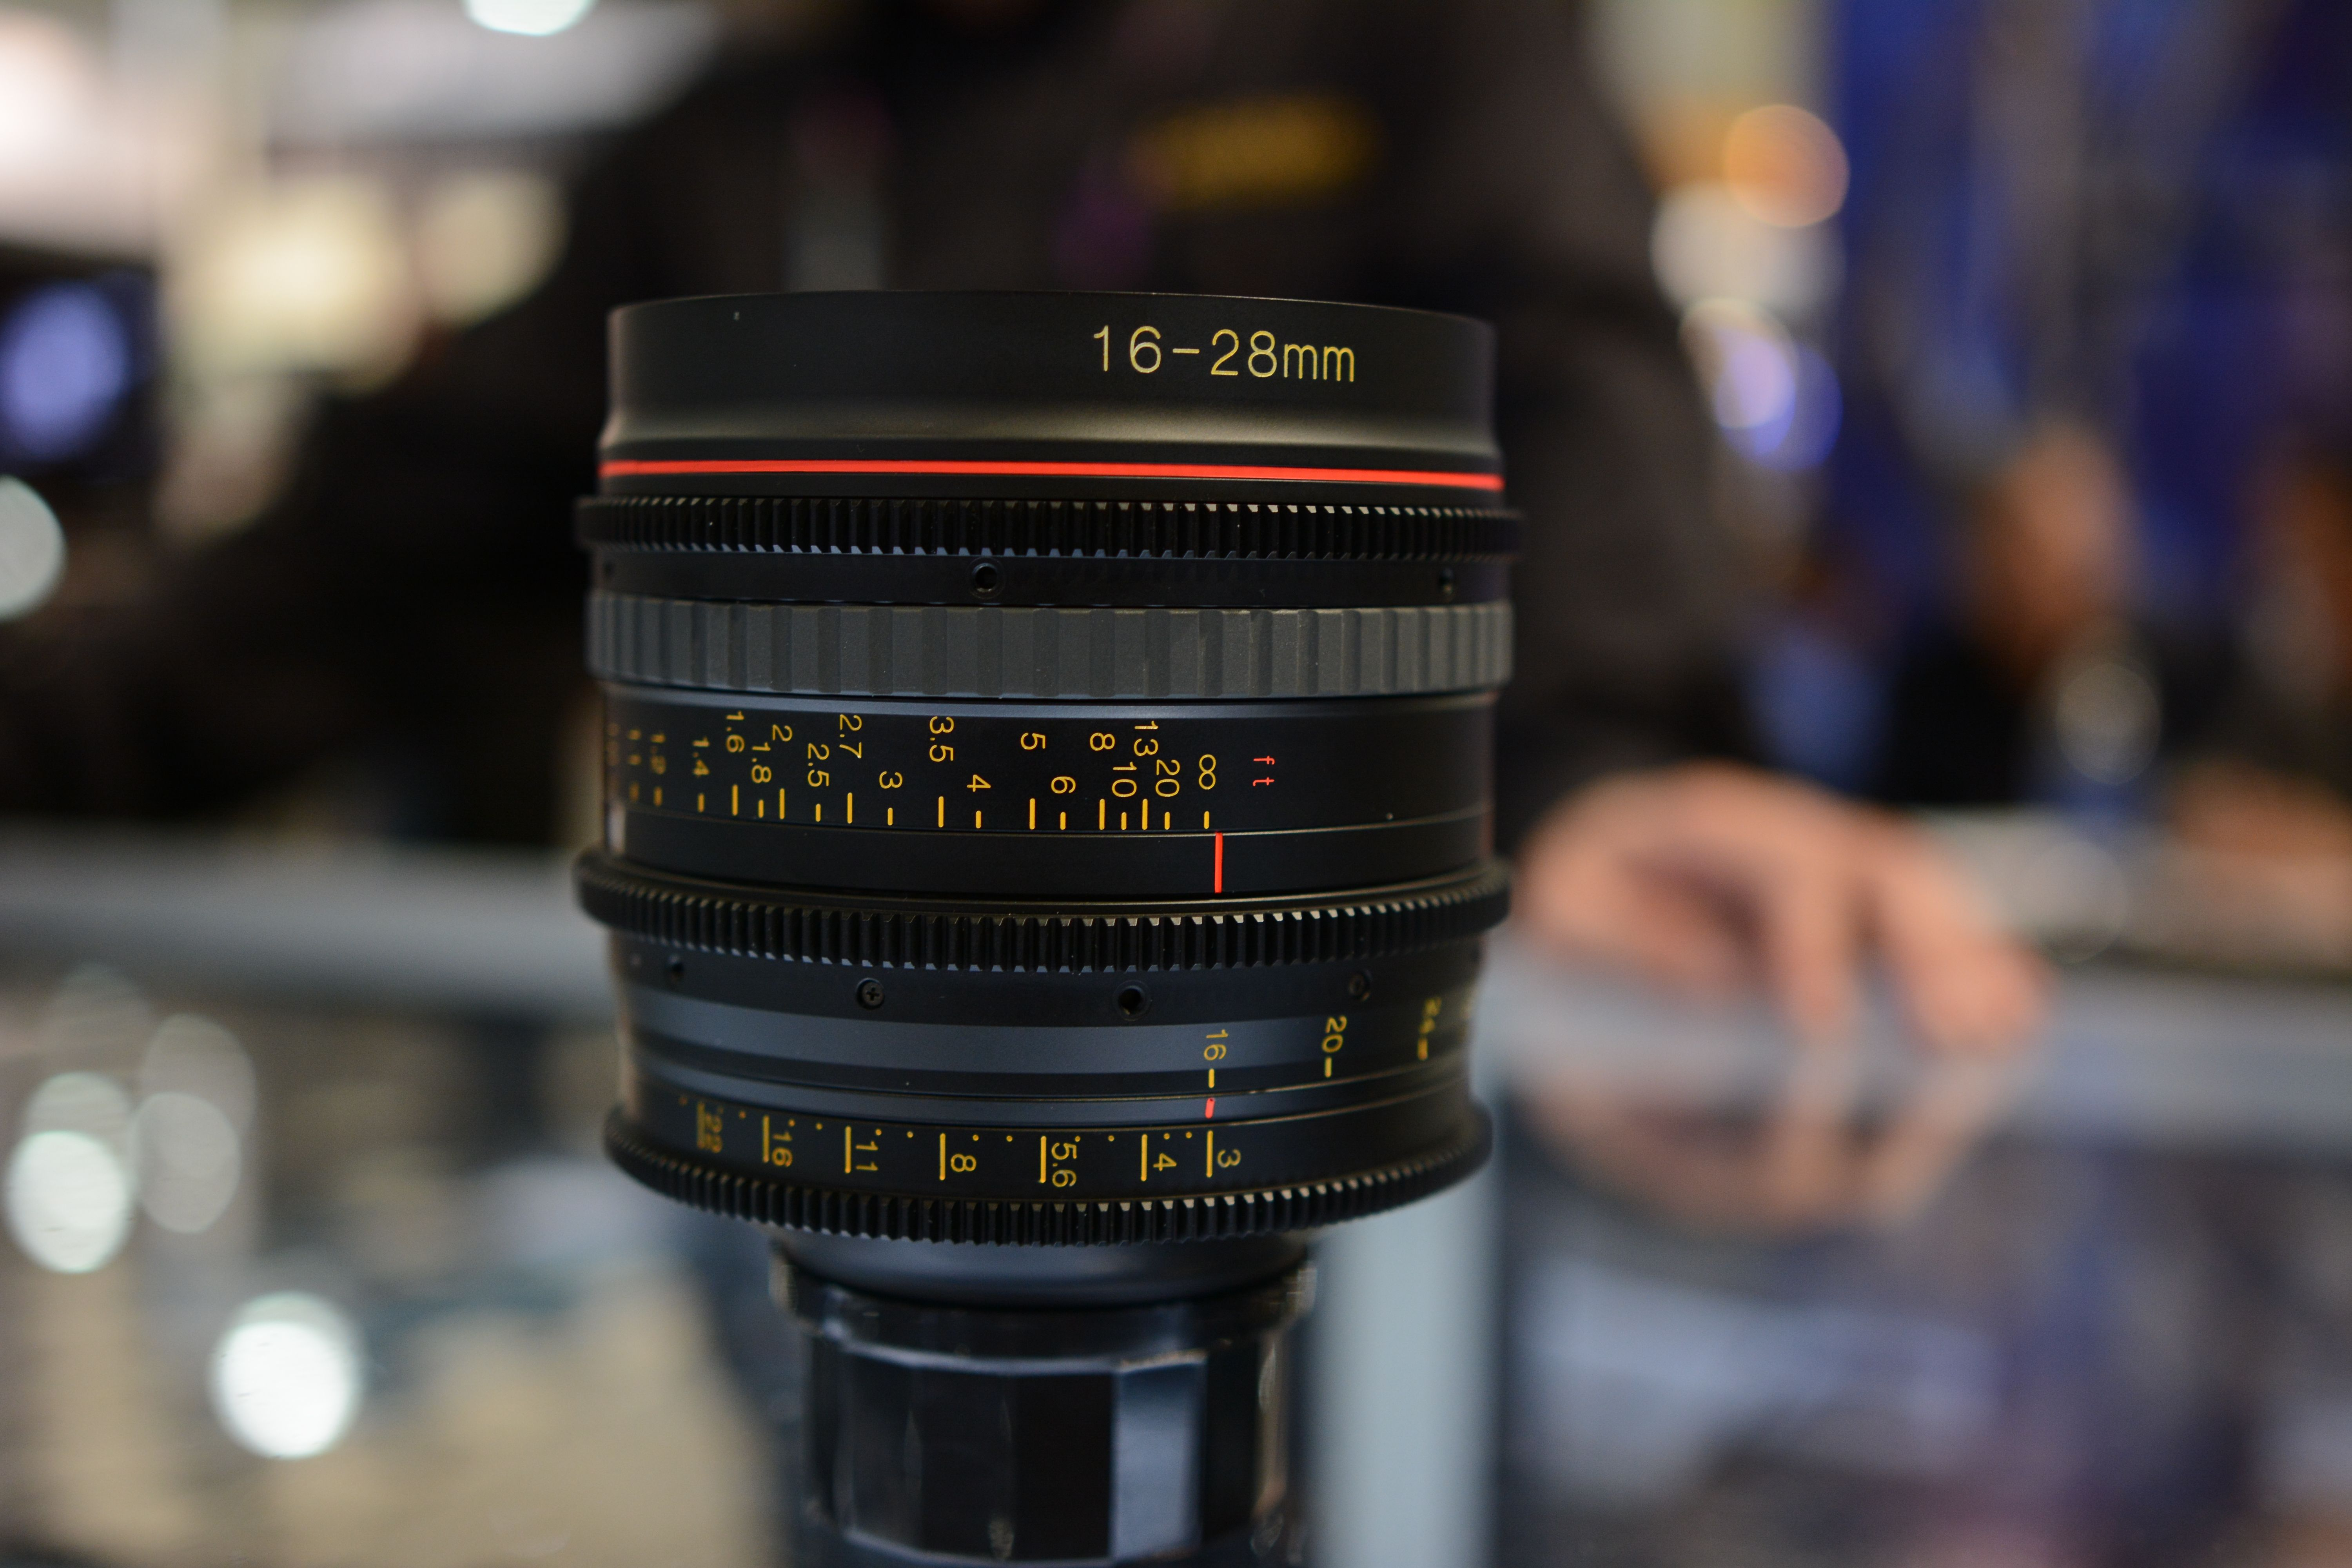 Tokina Is Rehousing Their 11 16 F2 8 Into A Cine Style Housing Can T Wait This Is Supposed To Be One Of The Best Fast Wide An Wide Angle Lens Wide Angle Best